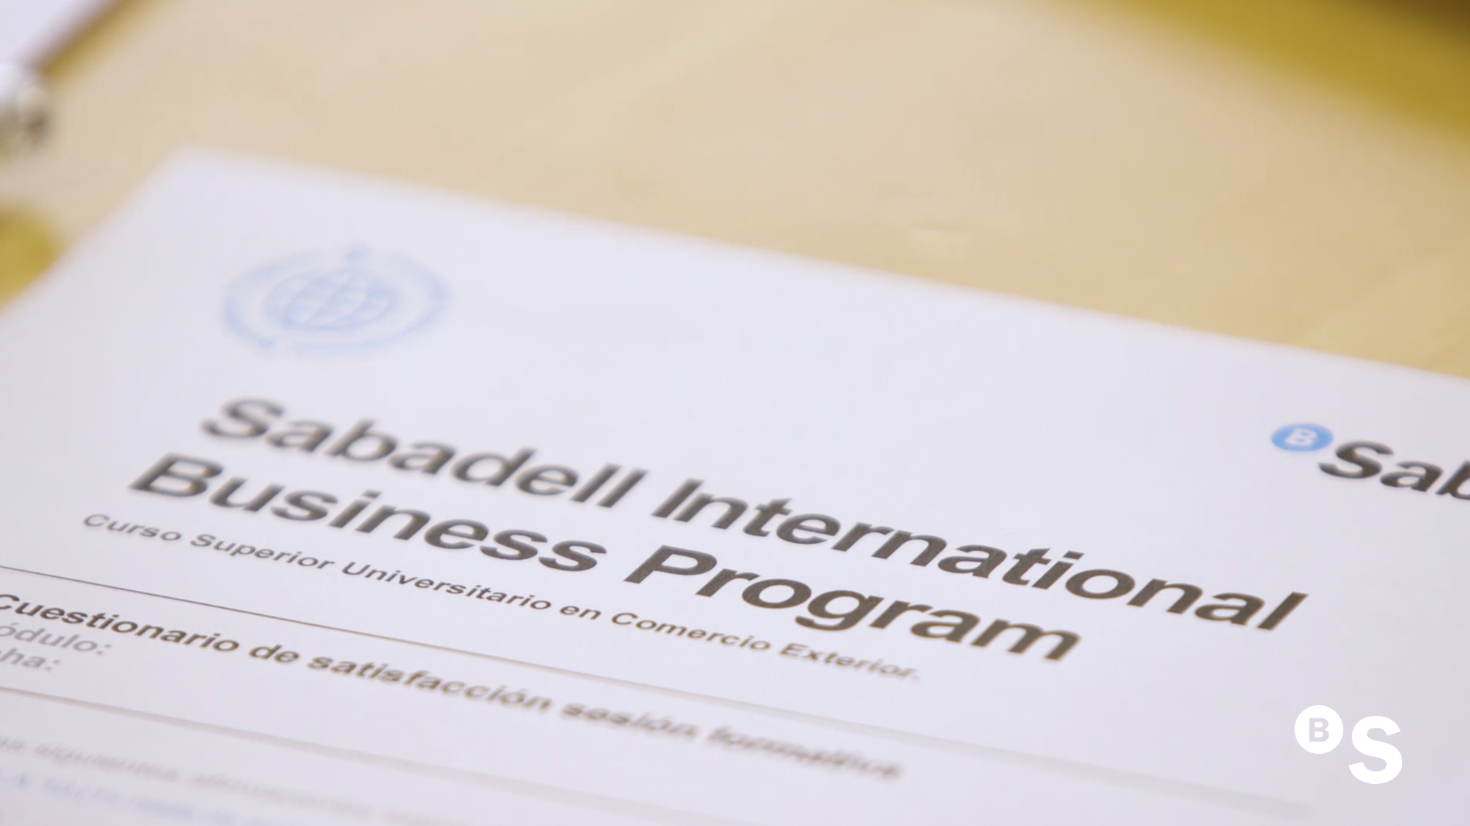 Sabadell  International  Business  Program